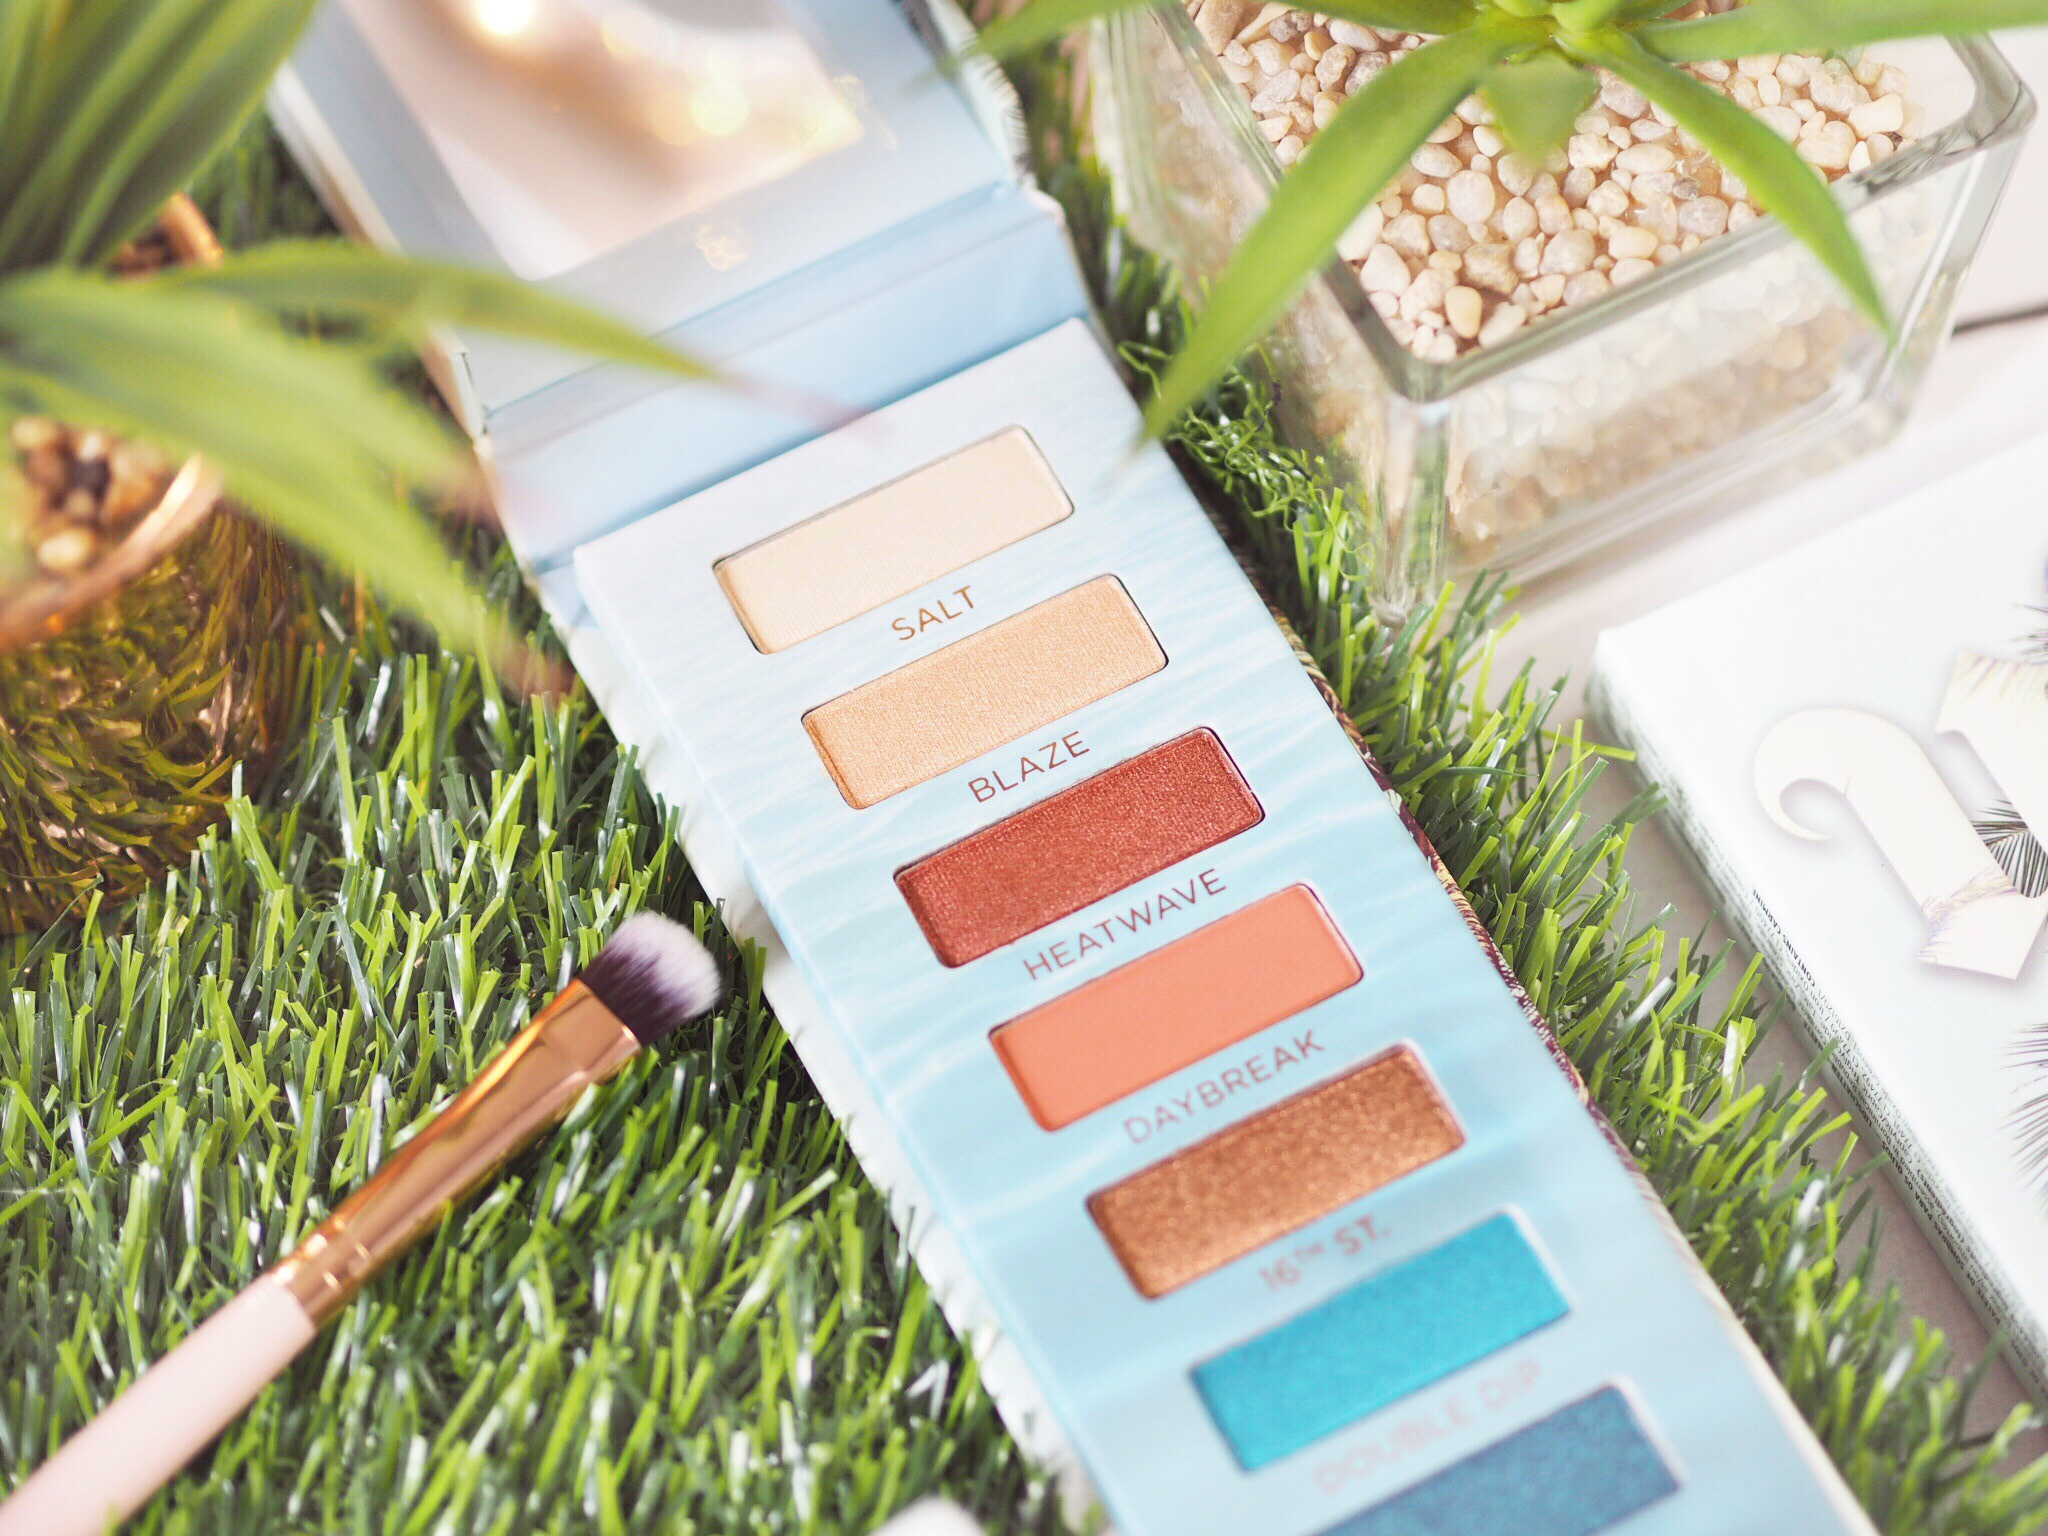 Urban Decay Beached Palette Review & Swatches